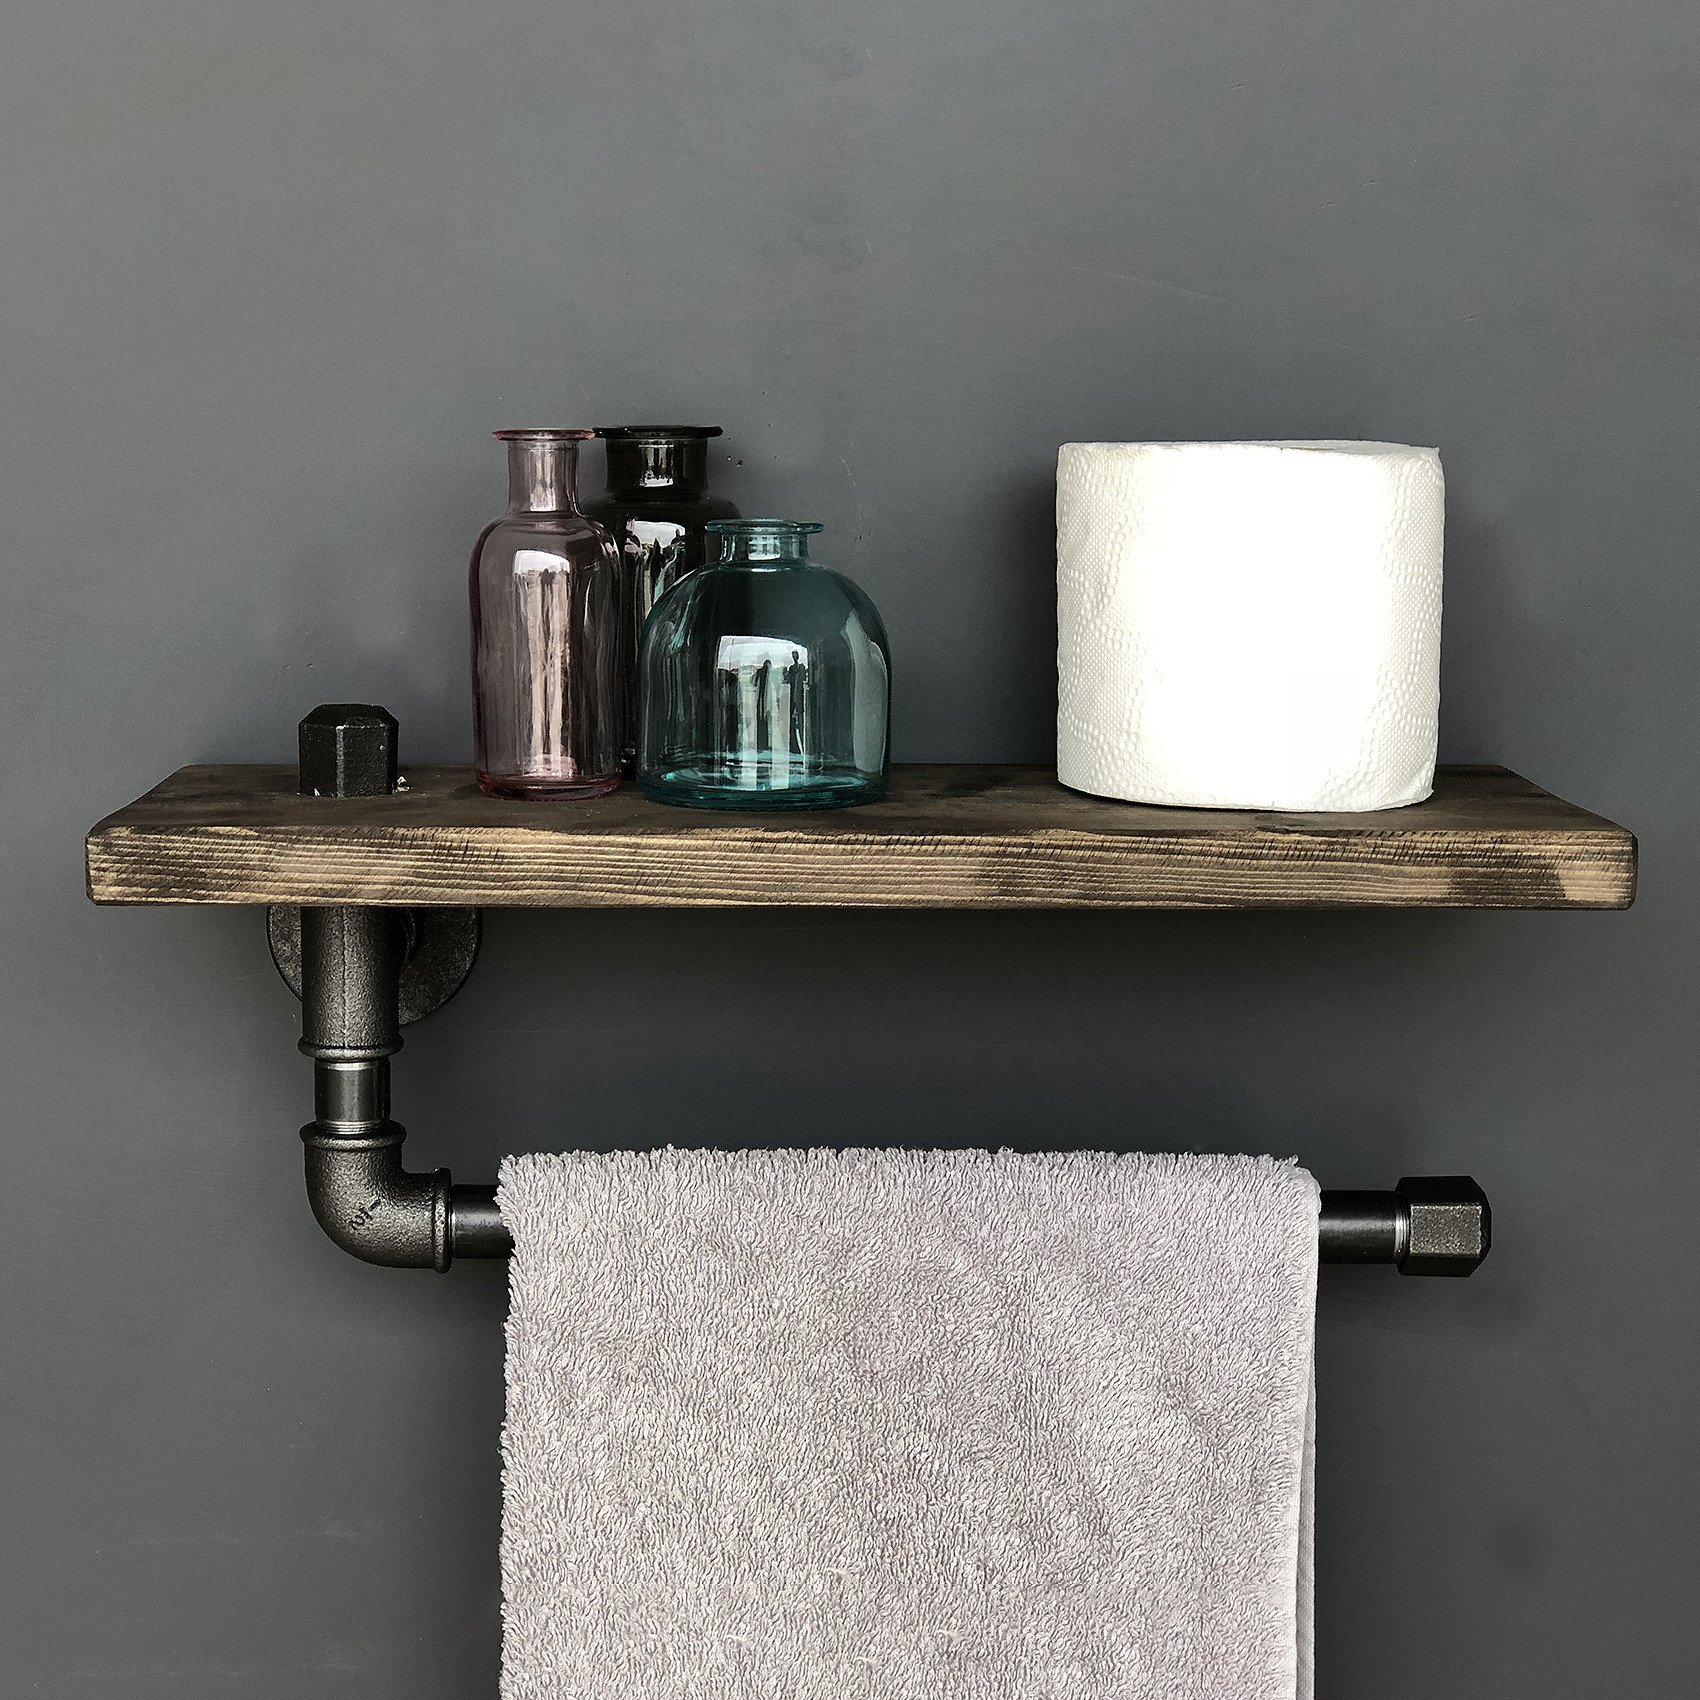 Authentic Handmade Metal Pipe Wall Shelf, 100% Solid Wood Shelf - Size (15.7'' x 4.7'' x 3.9''), Easy to Hang with Invisible Brackets, Multi Purposal Storage - Wall Mounted Shelves for Home & Office